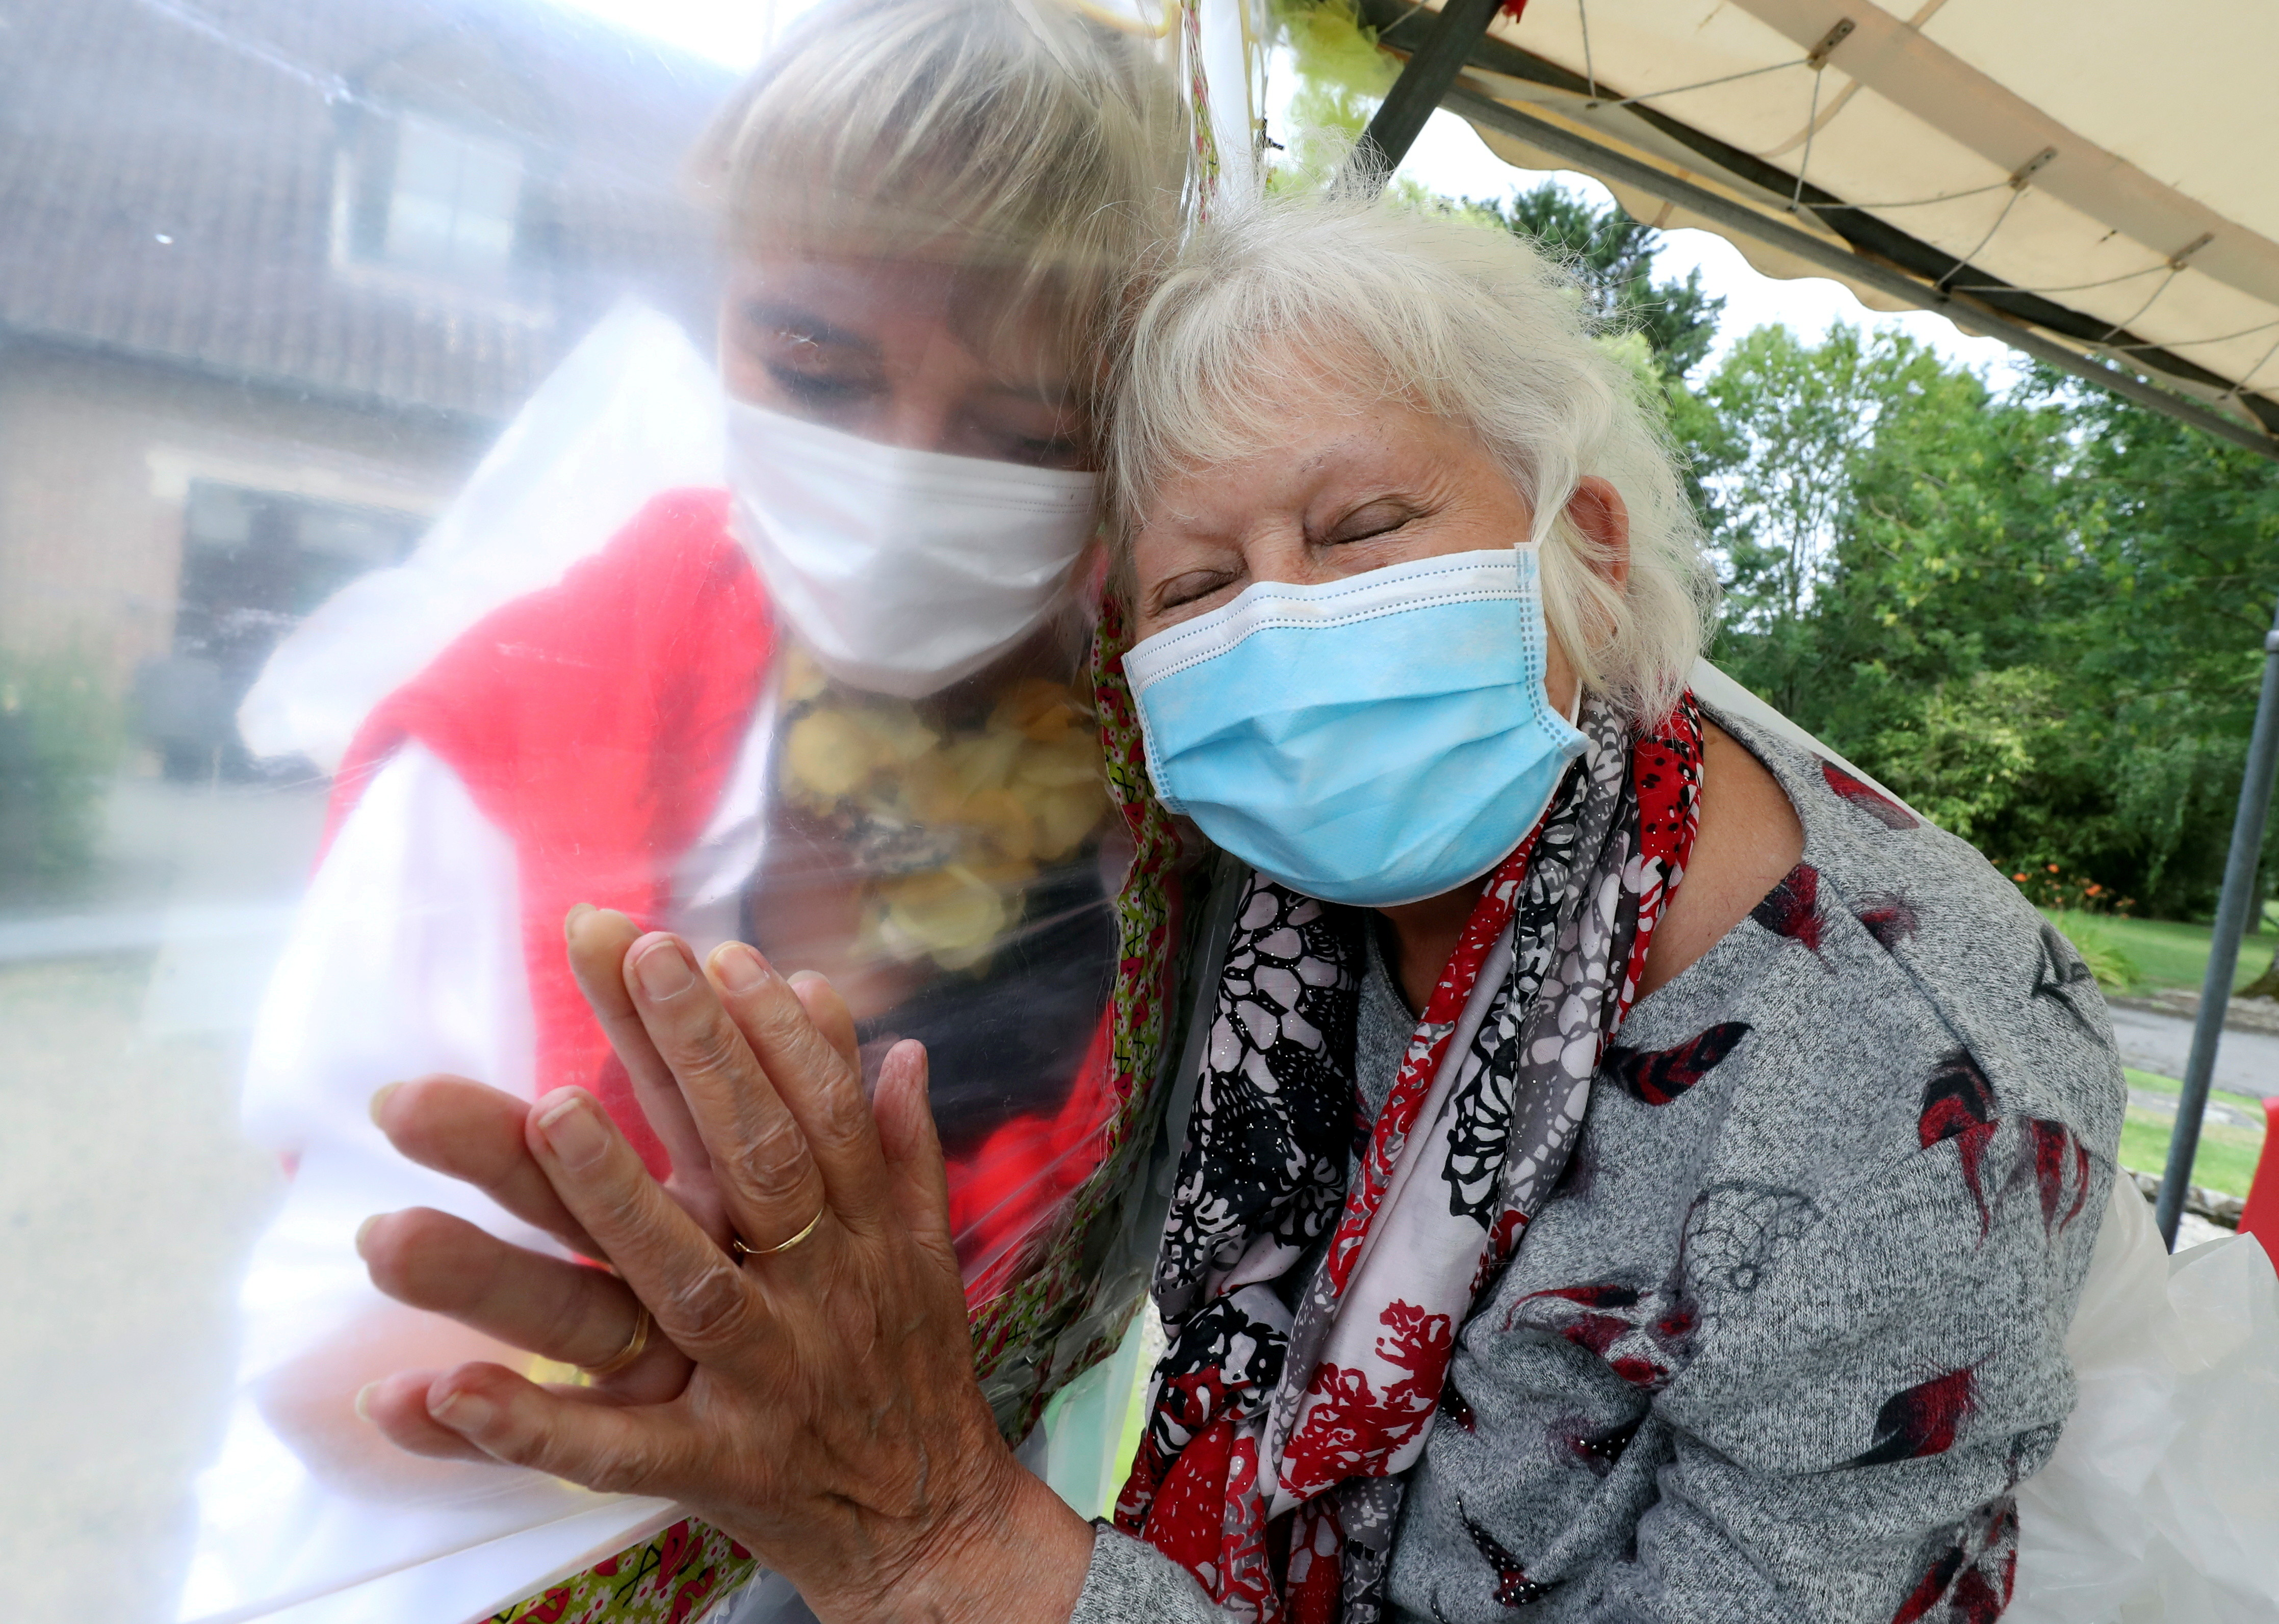 """Lily Hendrickx, 83, a resident at Belgian nursing home """"Le Jardin de Picardie"""" enjoys hugs and cuddles with Marie-Christine Desoer, the director of the residence, through a wall made with plastic sheets to protect against potential coronavirus disease (COVID-19) infection, in Peruwelz, Belgium, July 1, 2020. REUTERS/Yves Herman/File Photo     TPX IMAGES OF THE DAY     SEARCH """"GLOBAL COVID-19"""" FOR THIS STORY. SEARCH """"WIDER IMAGE"""" FOR ALL STORIES. - RC2NFK9YYM8J"""